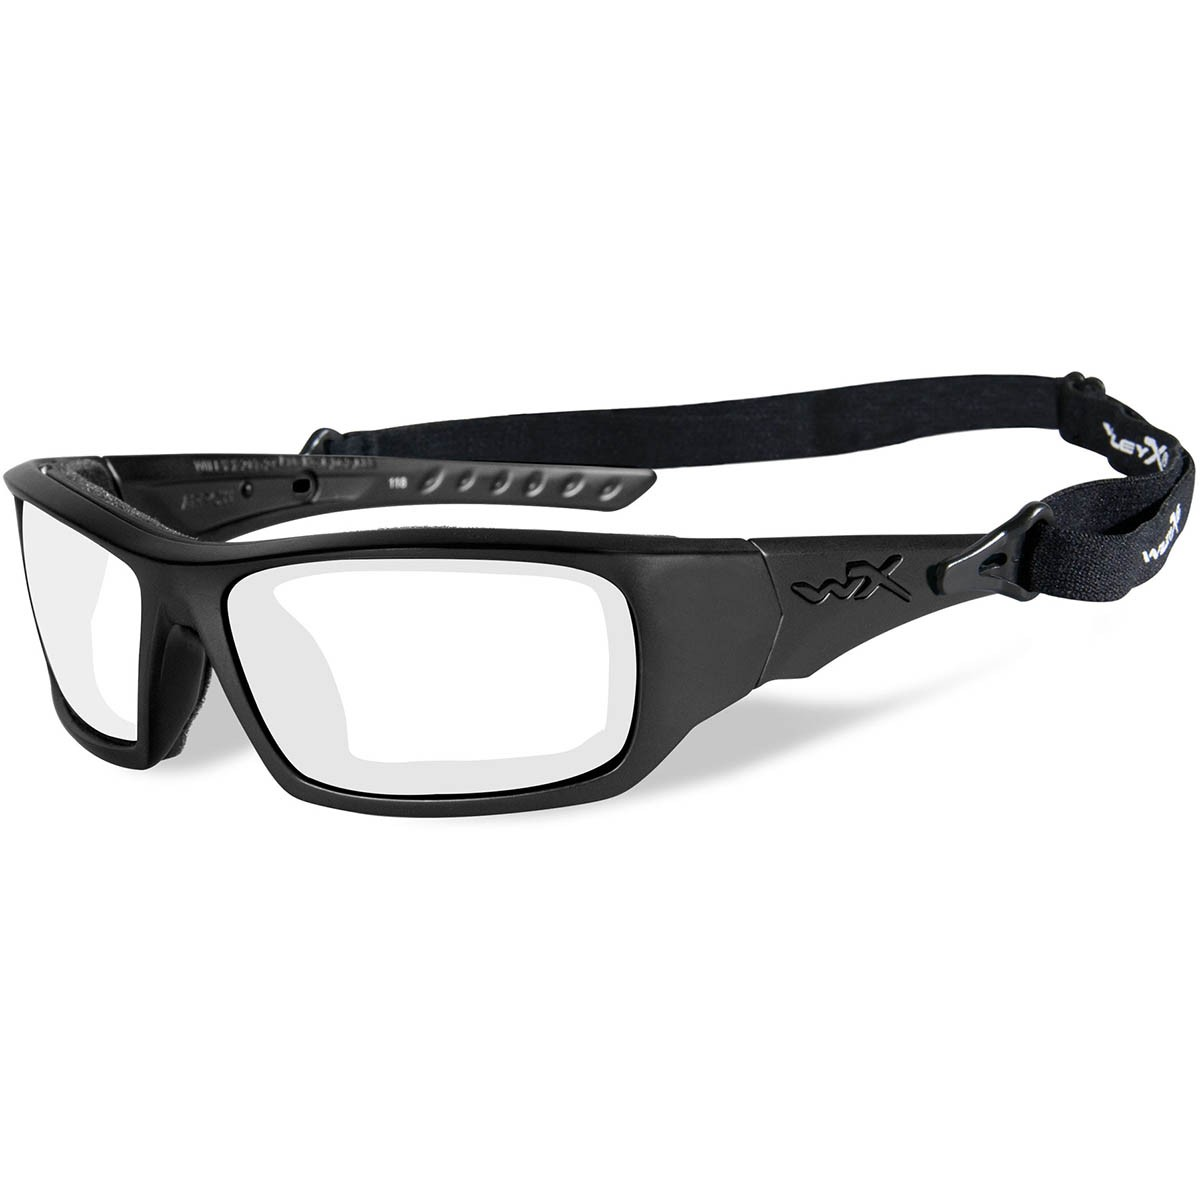 3143ef58ca Wiley X CCARR03 WX Arrow Safety Glasses - Matte Black Frame - Clear ...